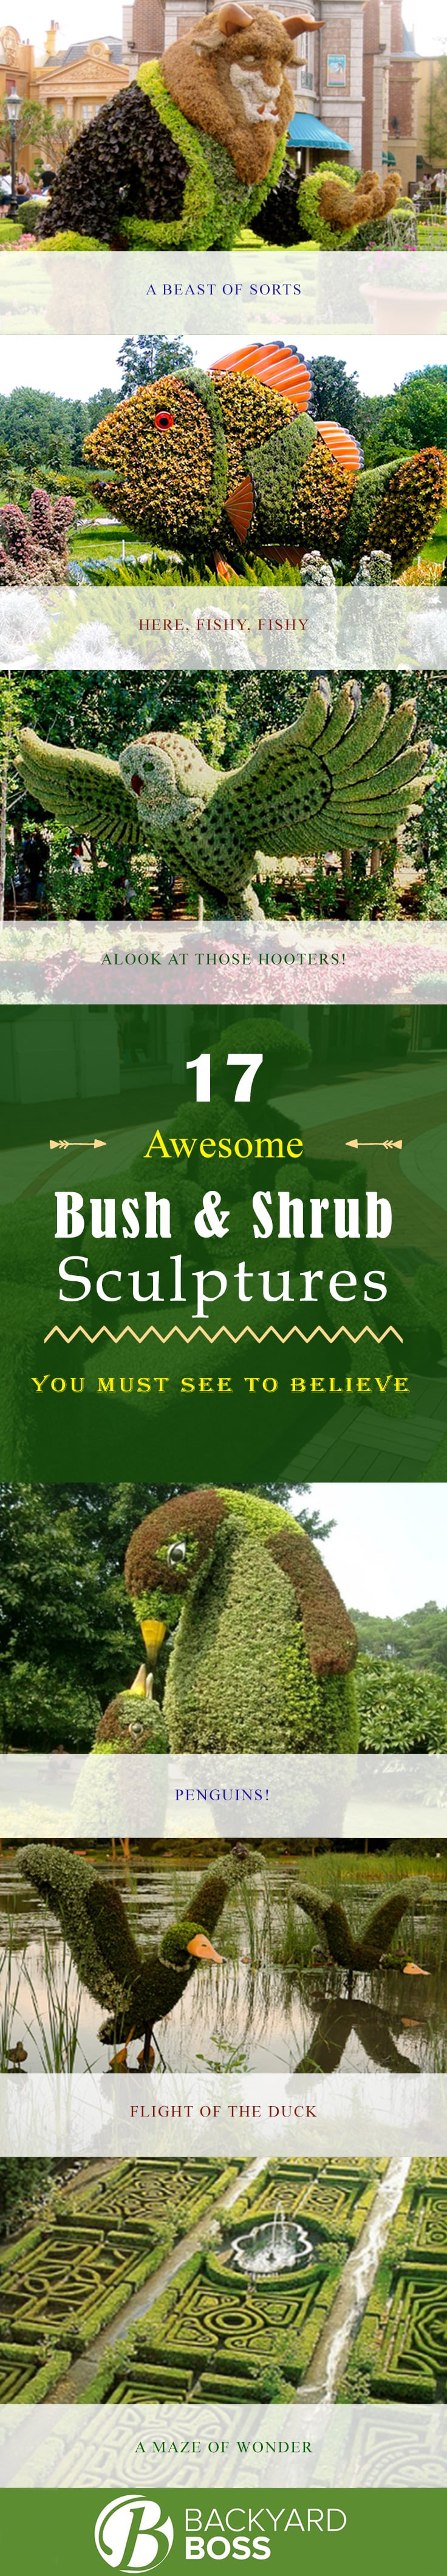 17-awesome-bush-shrub-sculptures-you-must-see-to-believe